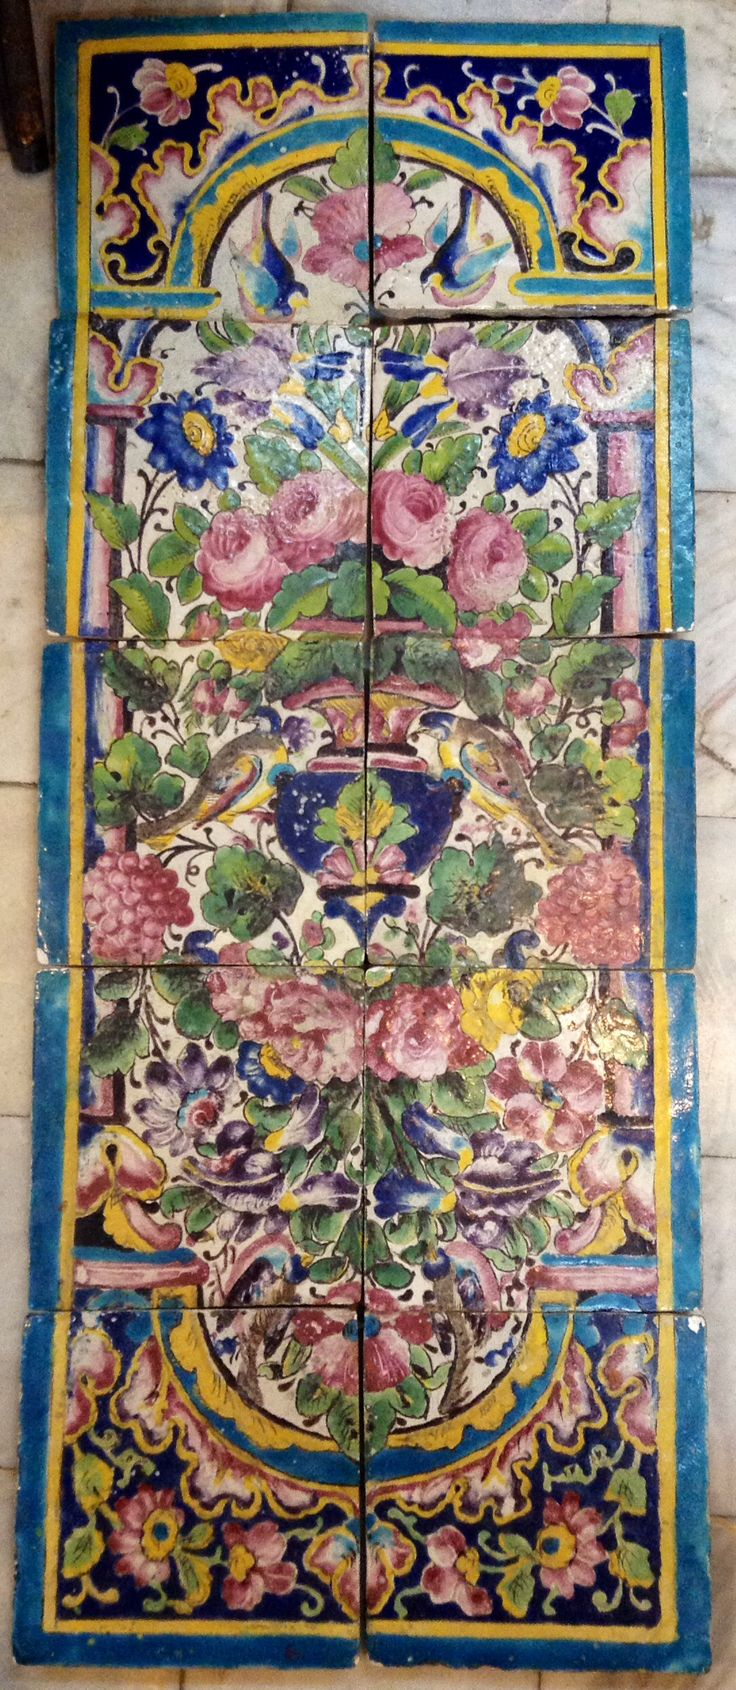 175 Best Images About Tile And Azulejo On Pinterest